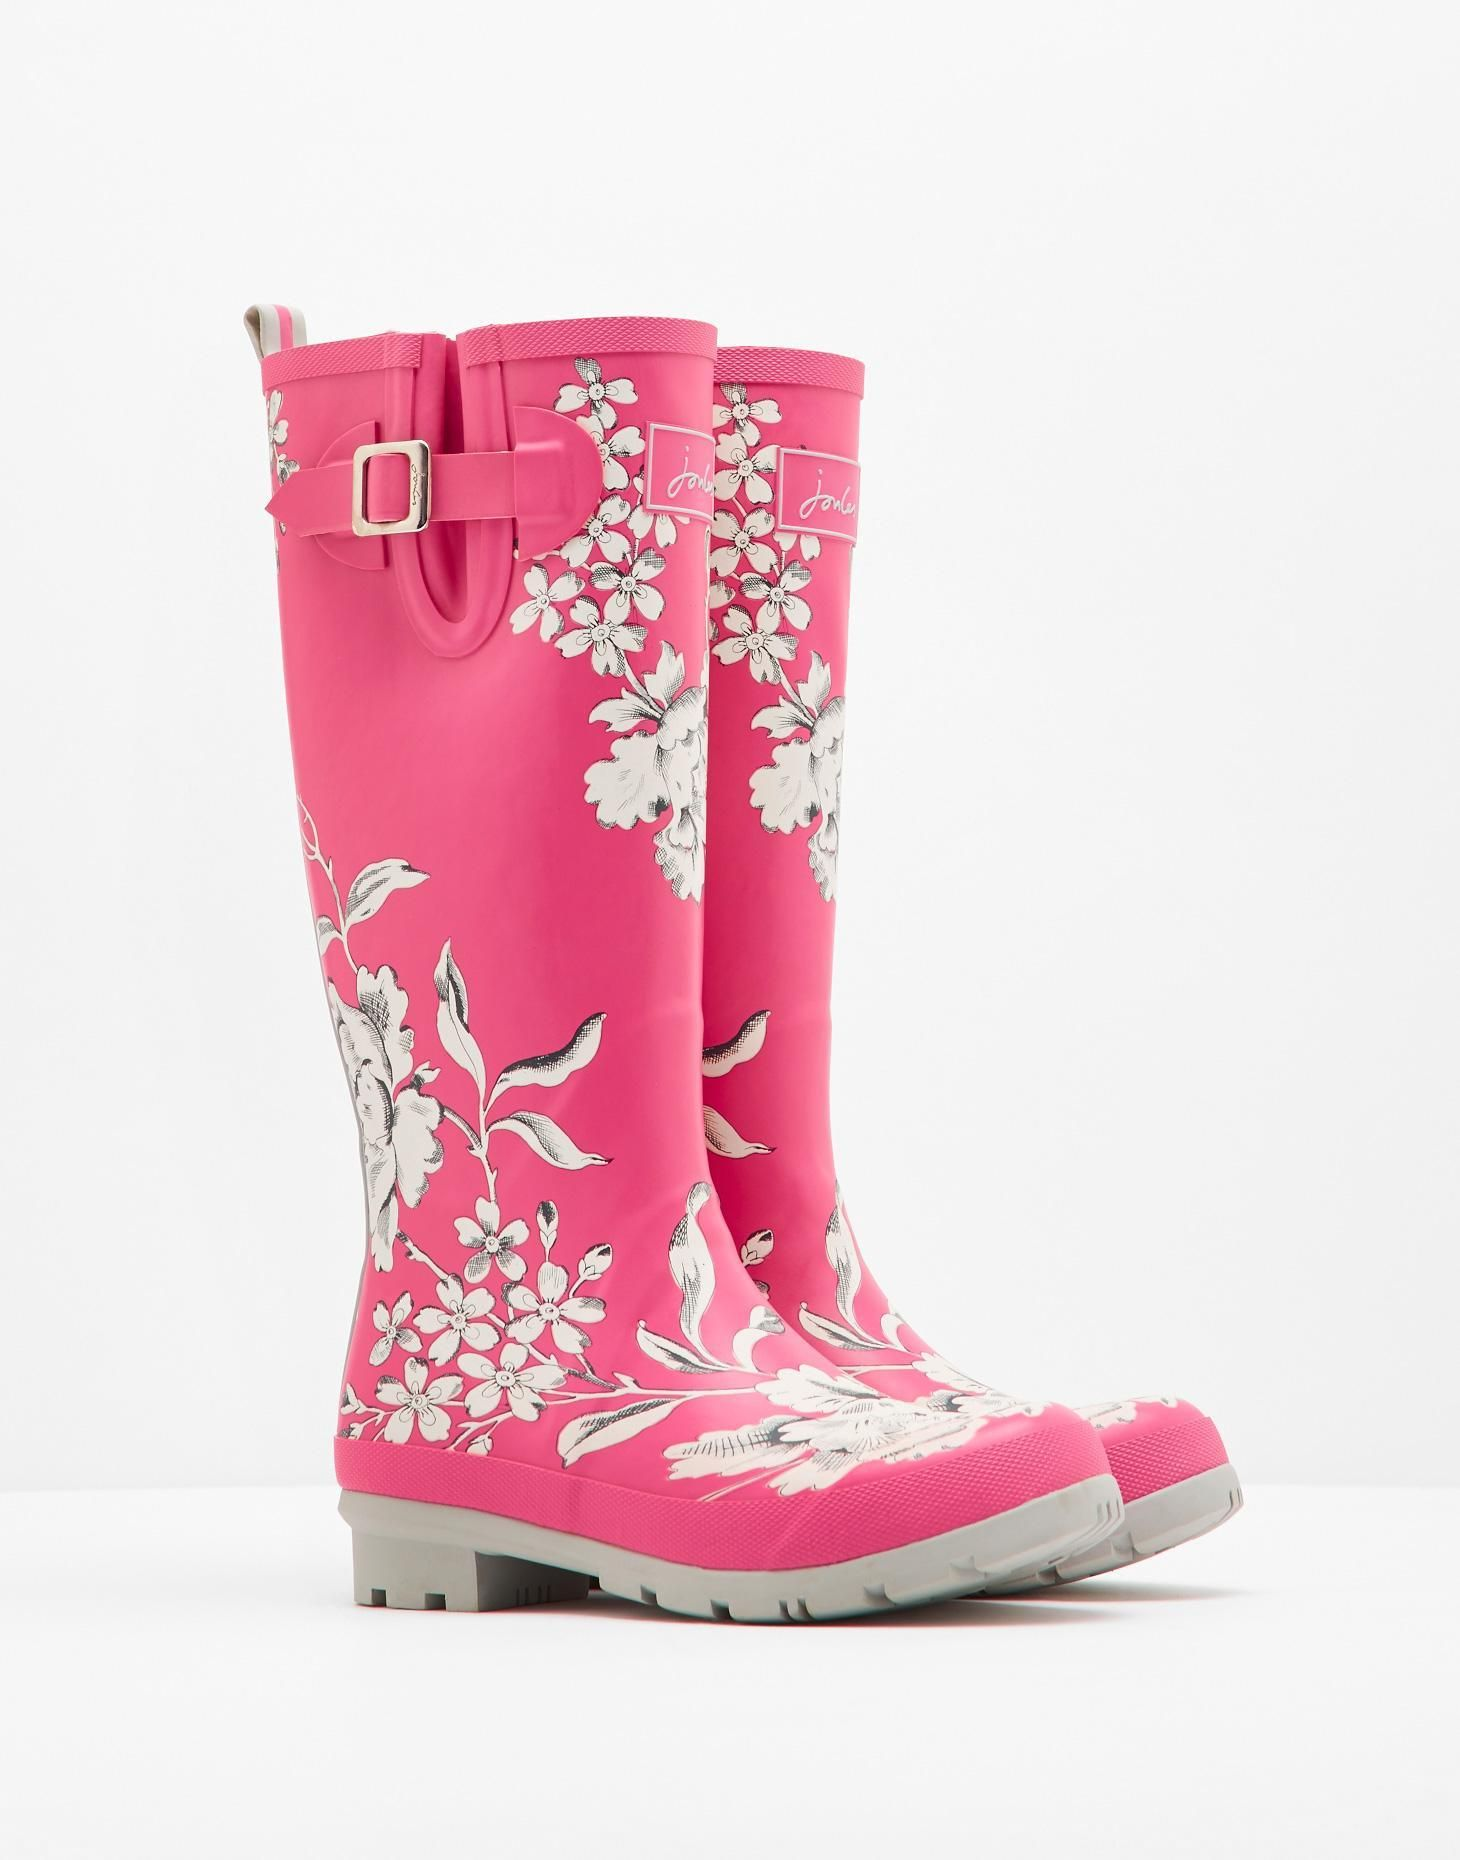 Wellyprint True Pink Floral Printed Rain Boots